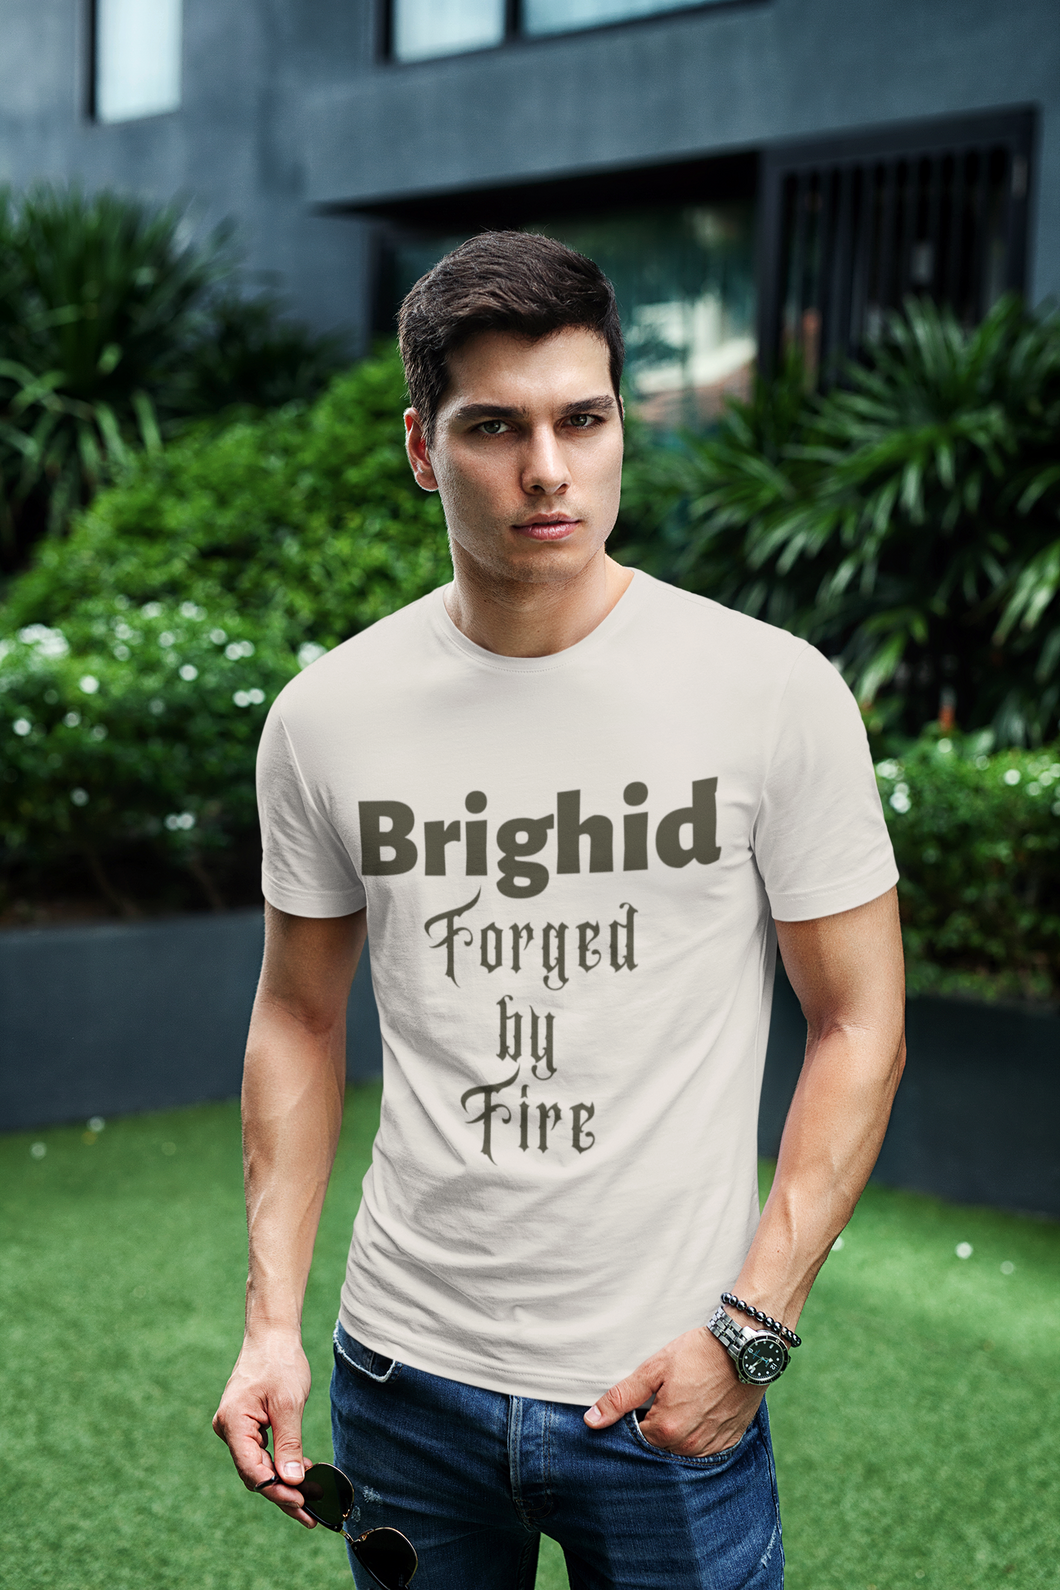 Brighid - Forged by Fire - Cream, Gold & Silver - Unisex Short Sleeve Jersey T-Shirt - Eel & Otter